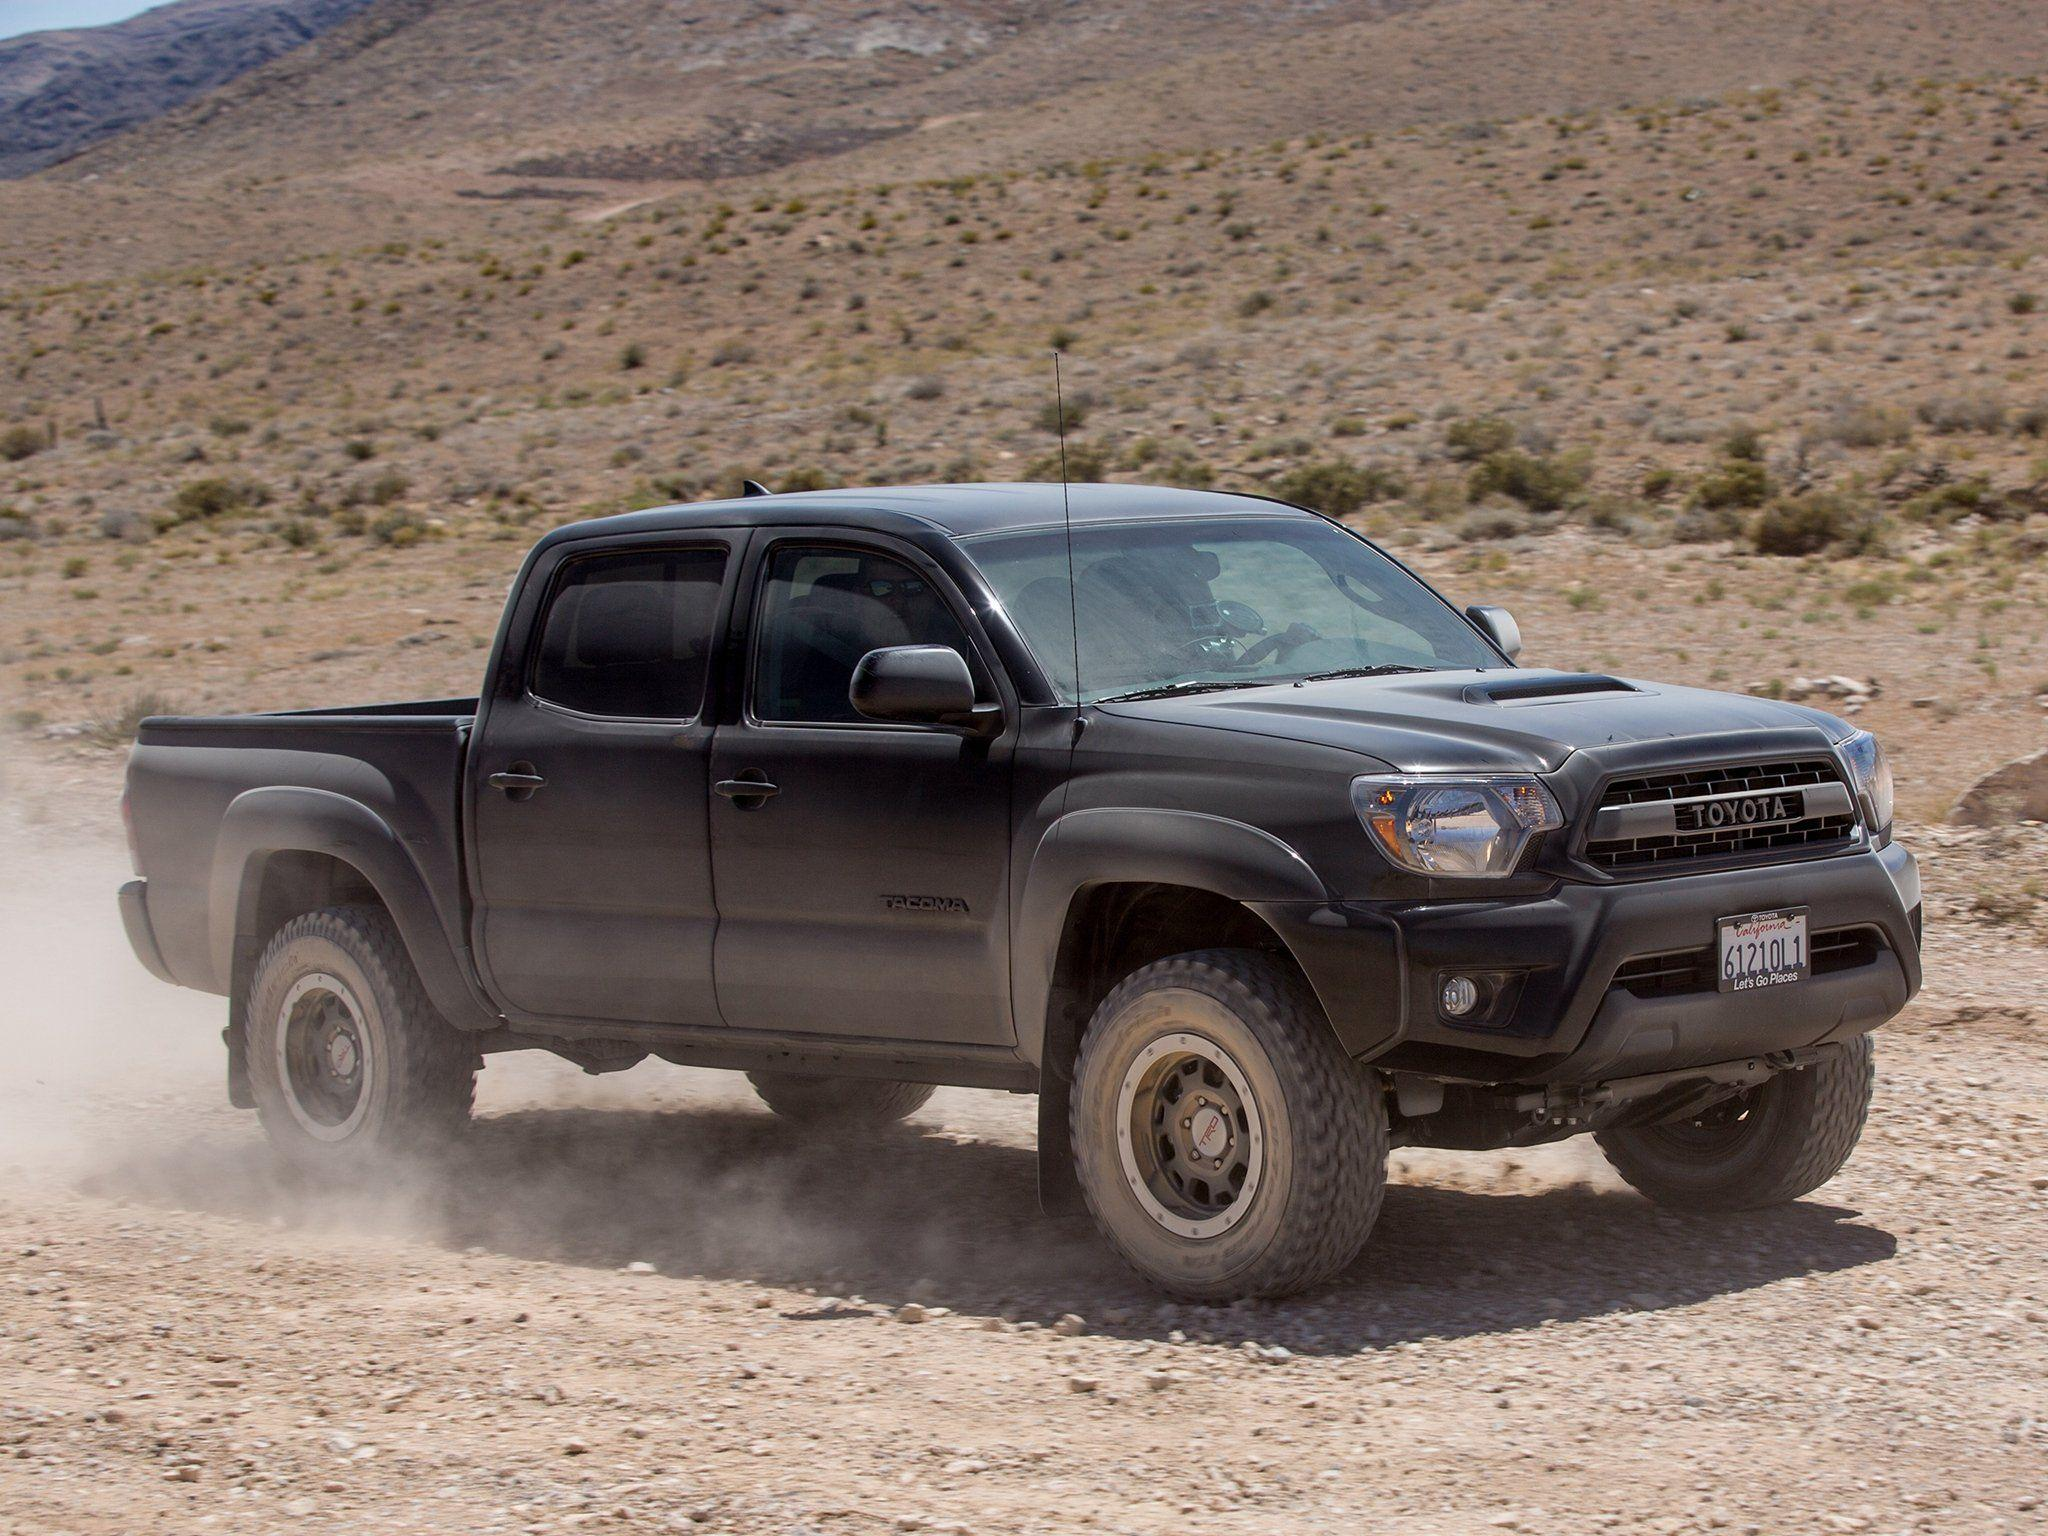 Toyota Tacoma 2015 HD Wallpapers